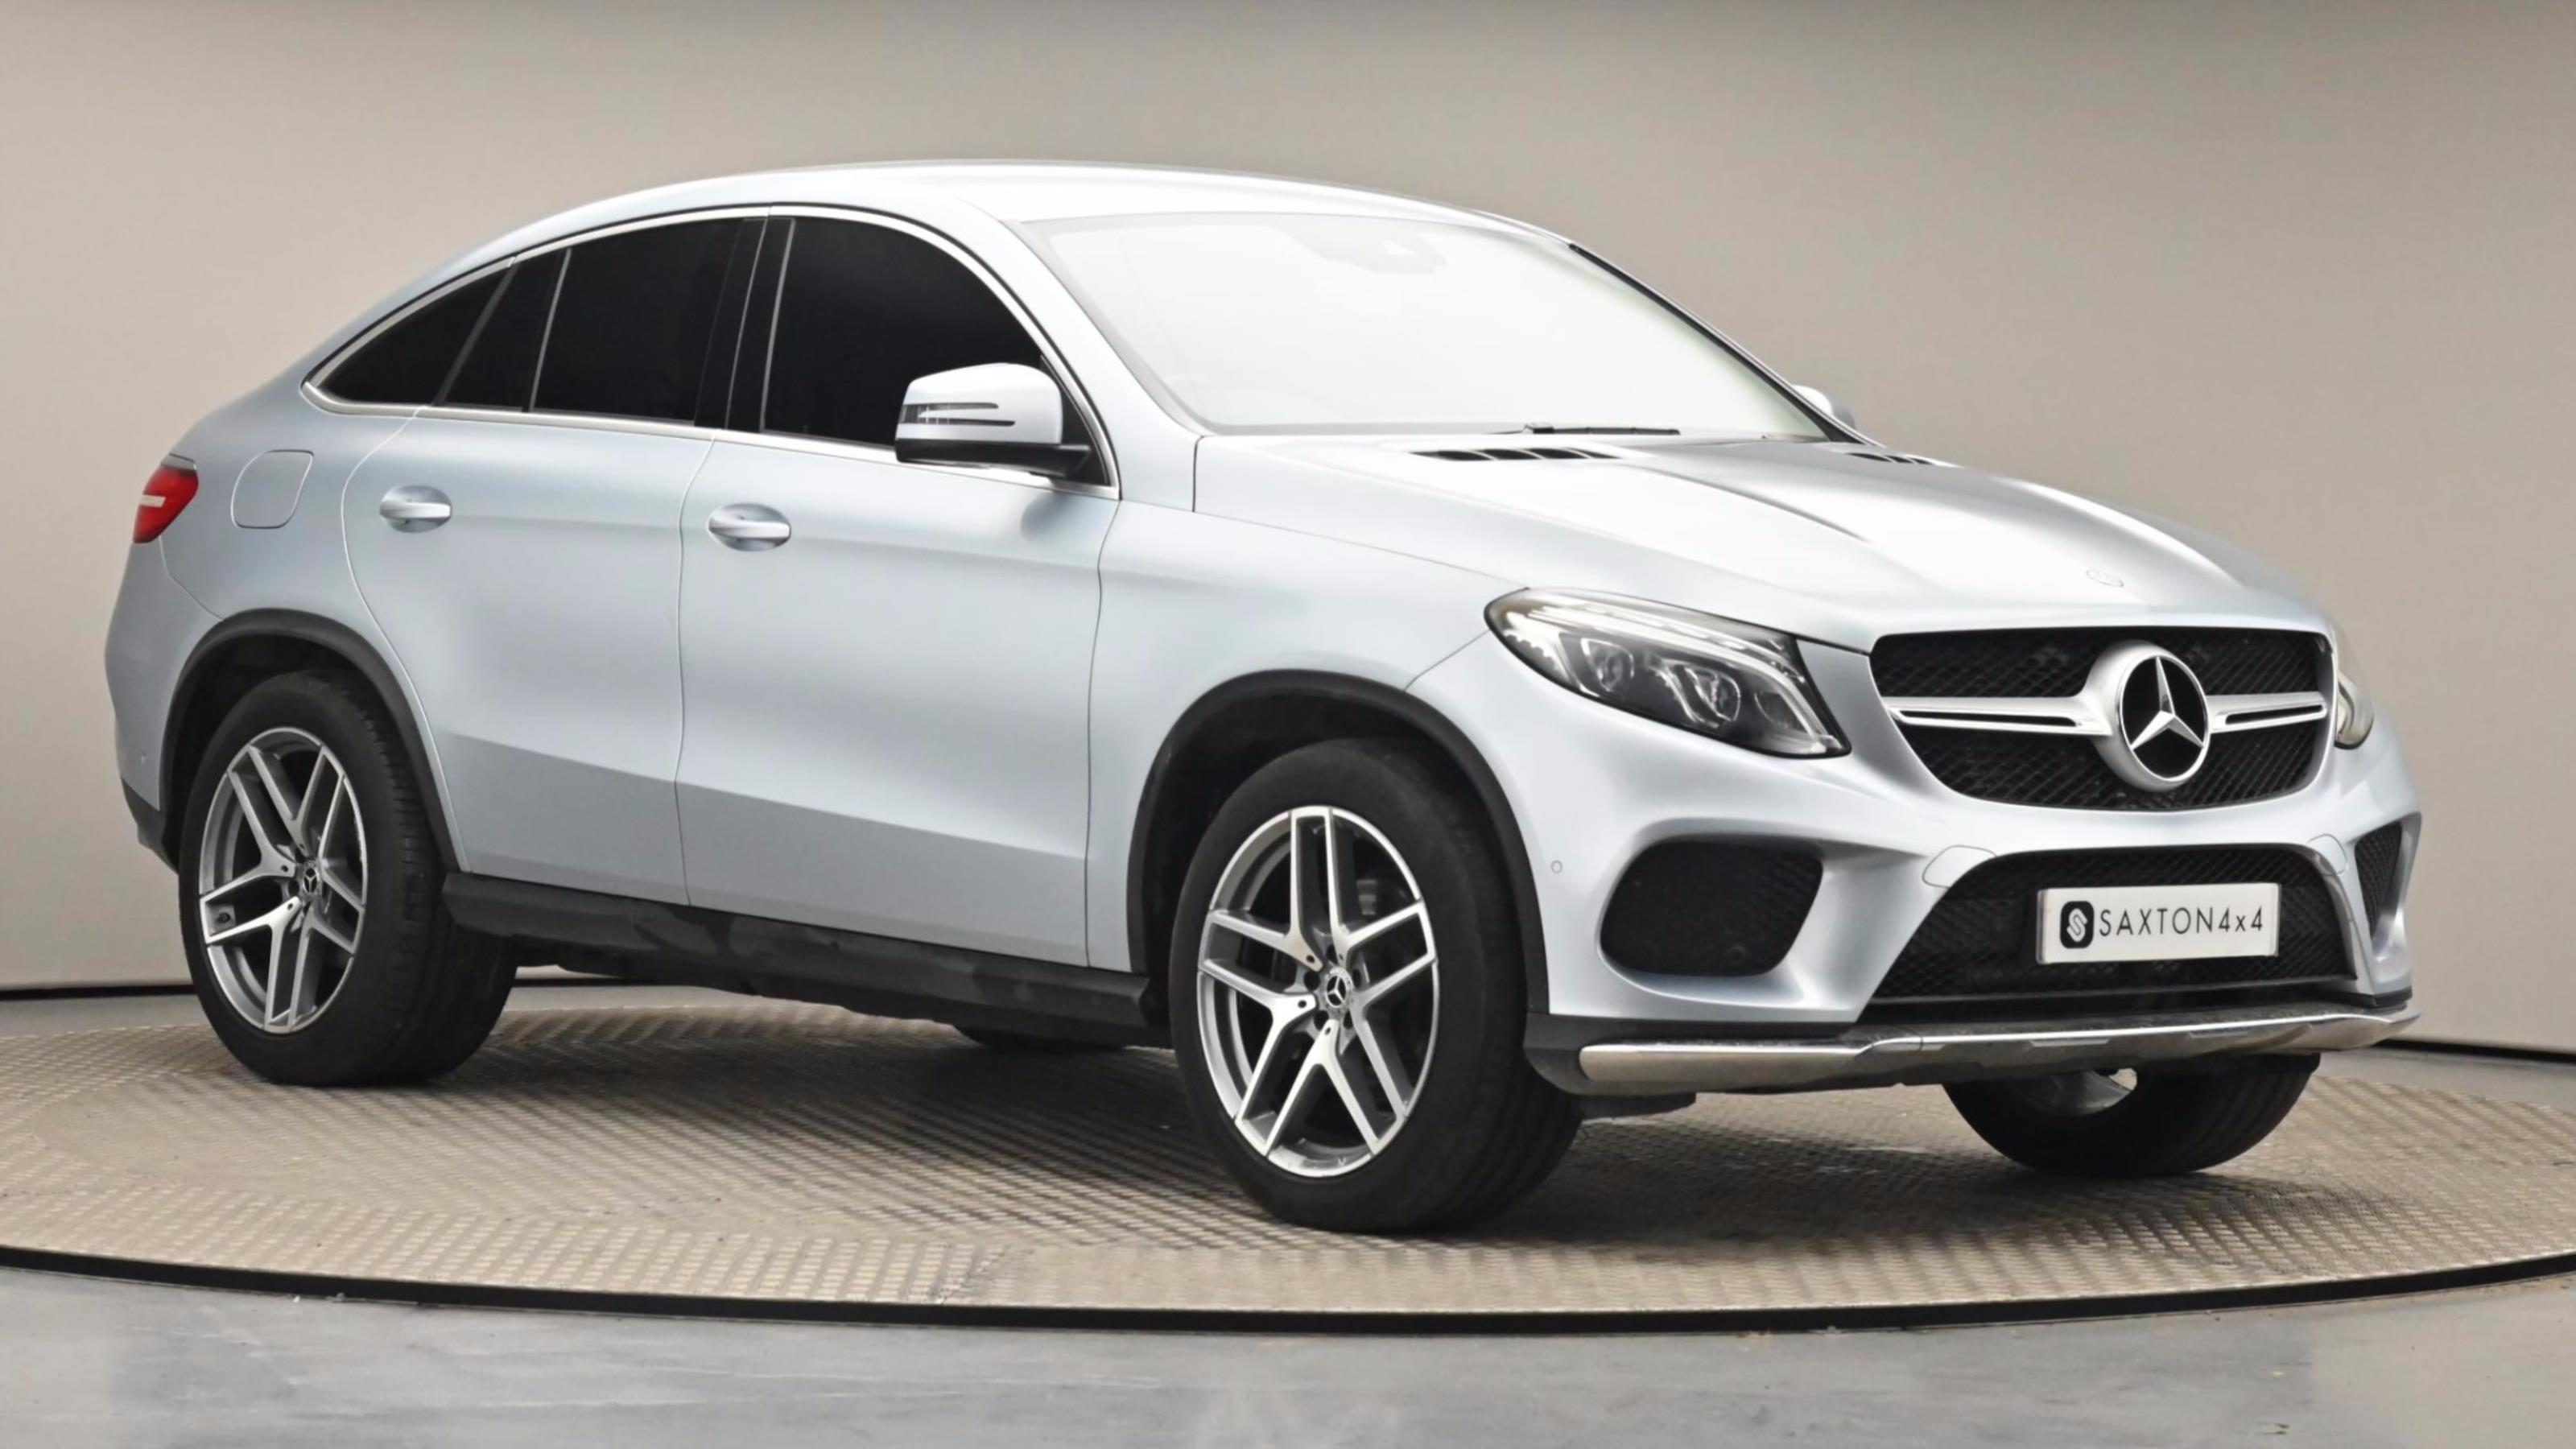 Used 2018 Mercedes-Benz GLE COUPE GLE 350d 4Matic AMG Line 5dr 9G-Tronic SILVER at Saxton4x4